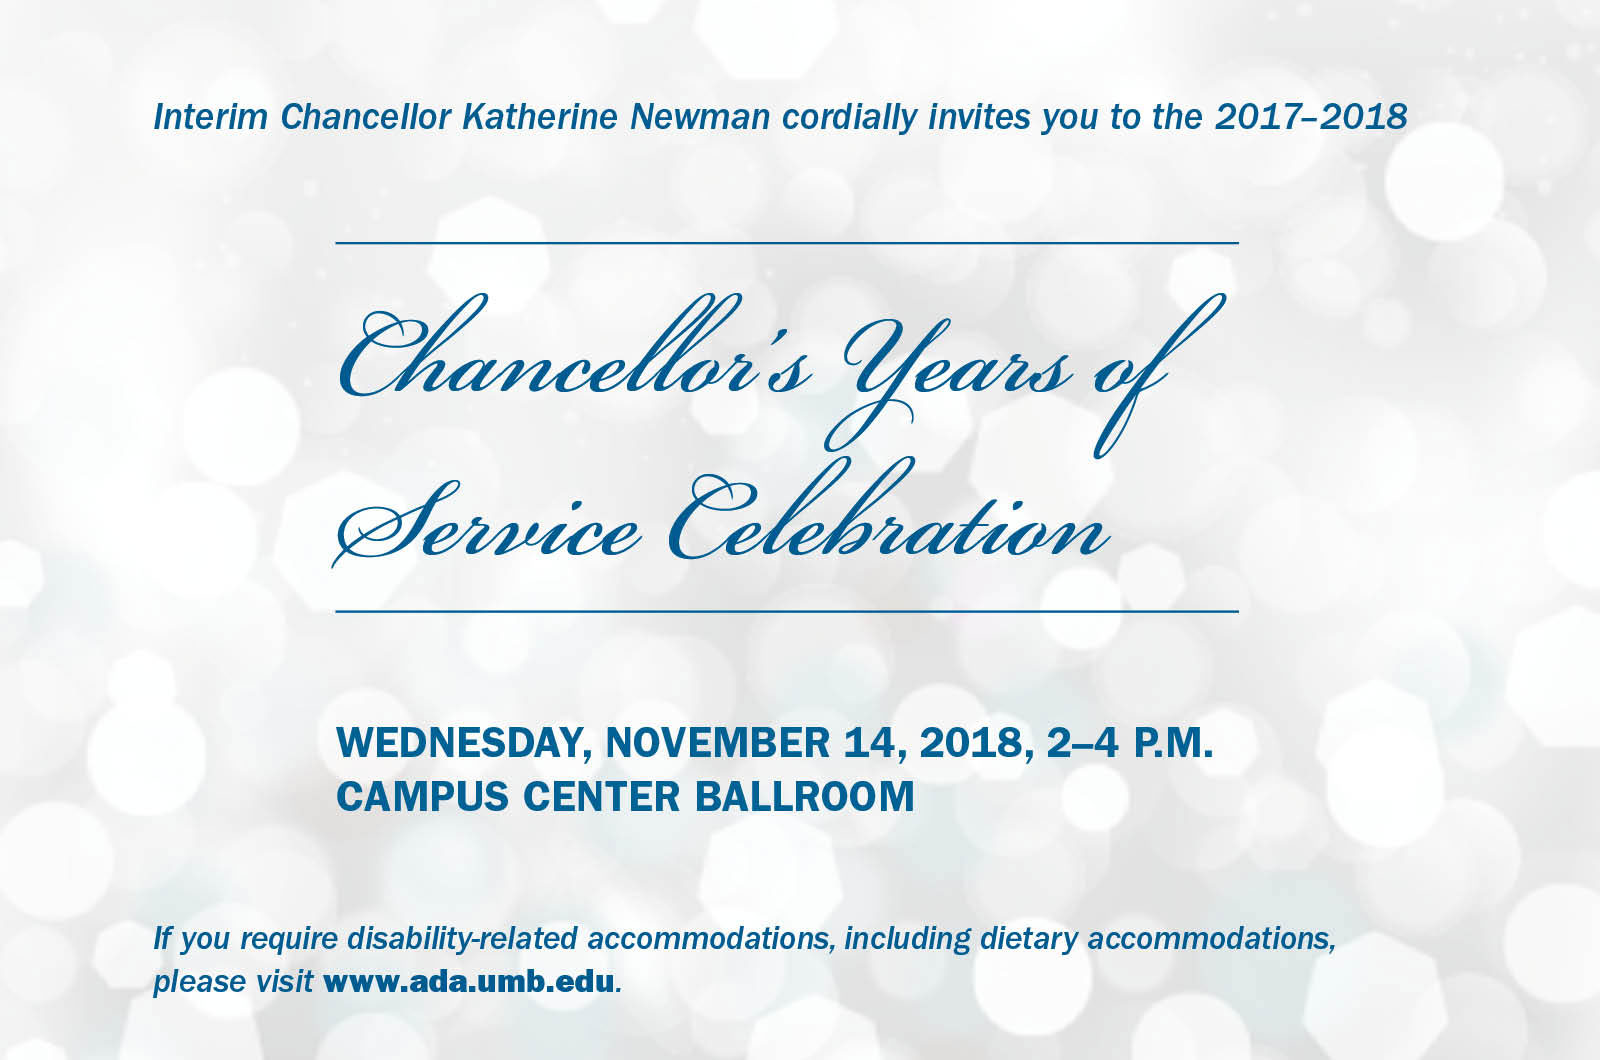 Graphic says Chancellor's Years of Service Celebration November 14, 2018 2-4 p.m.